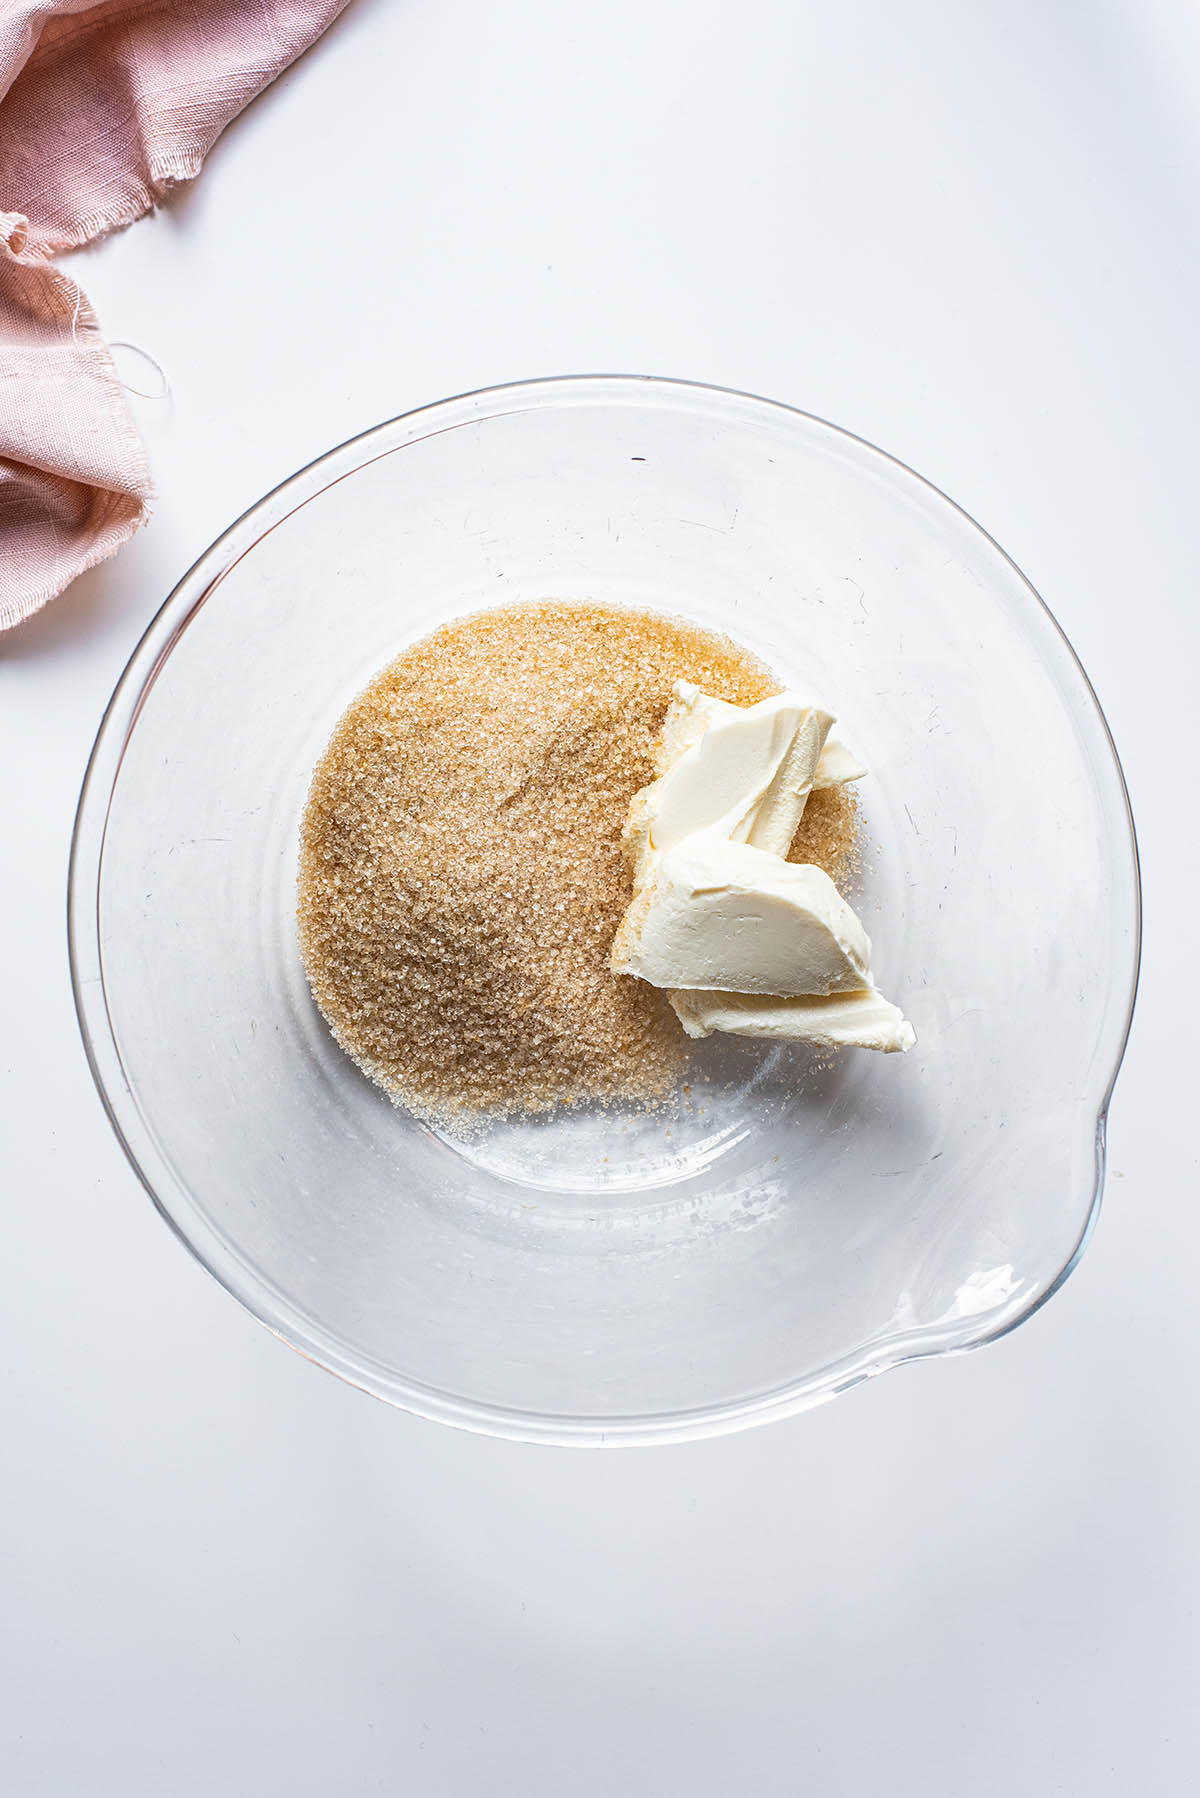 Vegan butter and sugar in a large glass bowl.